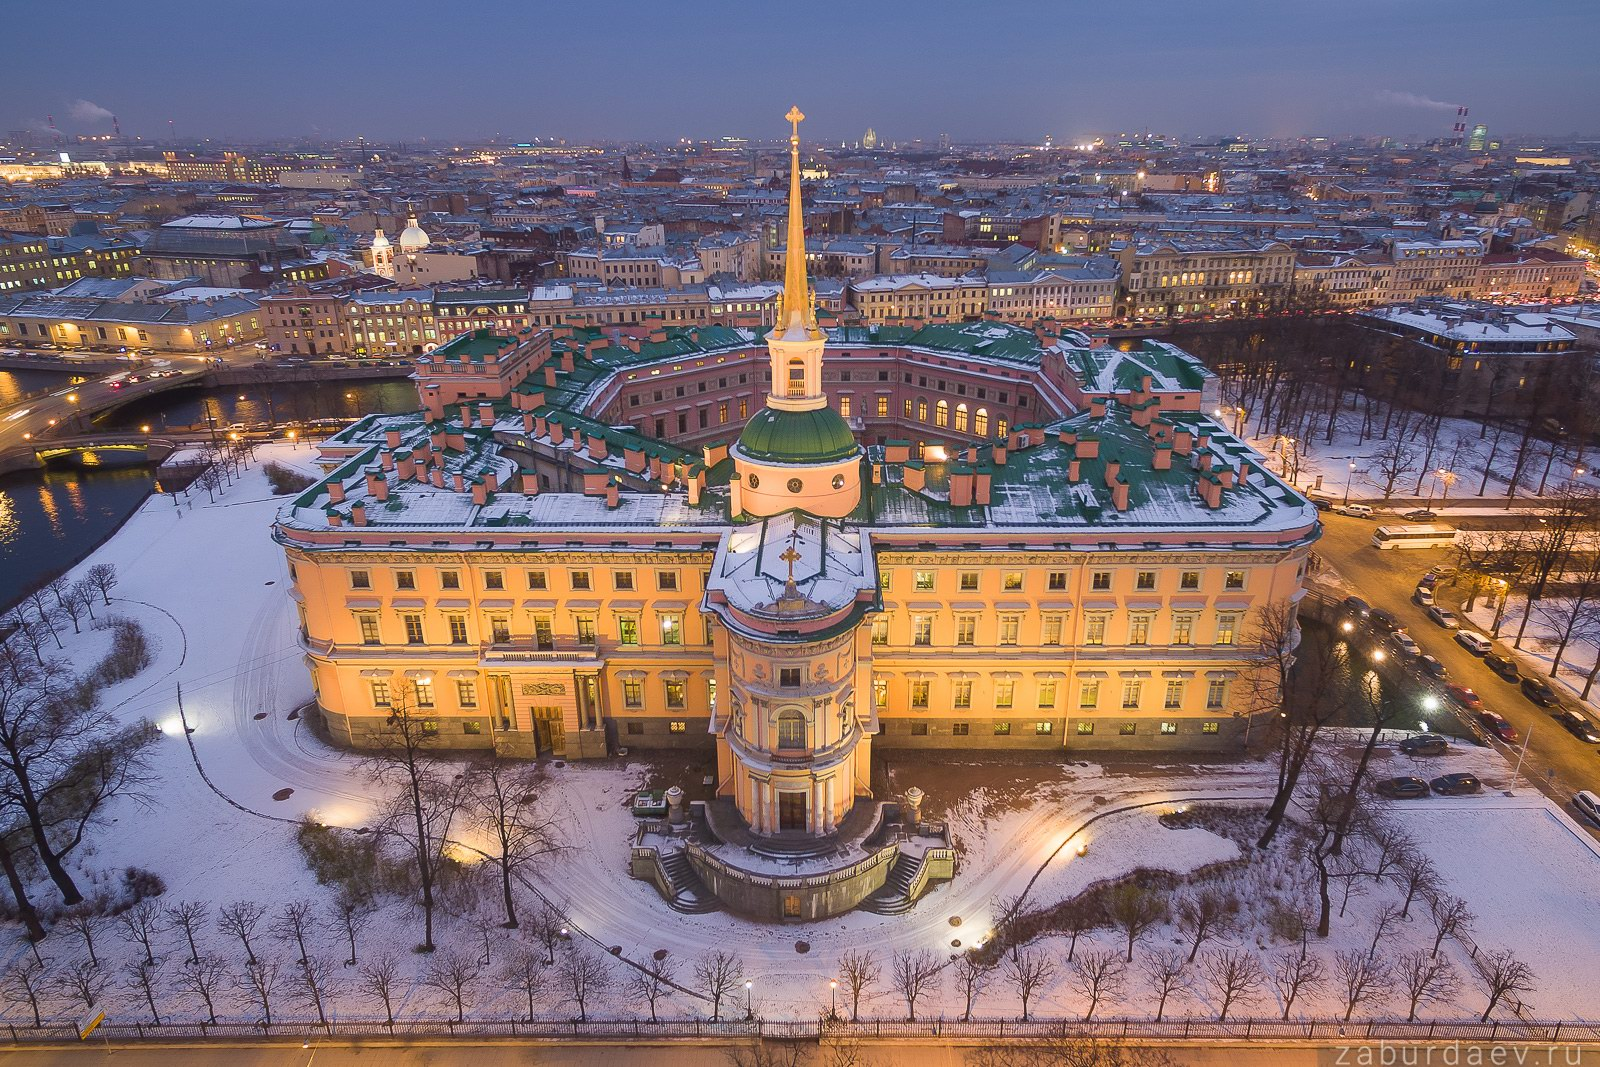 Saint Petersburg - Wikipedia